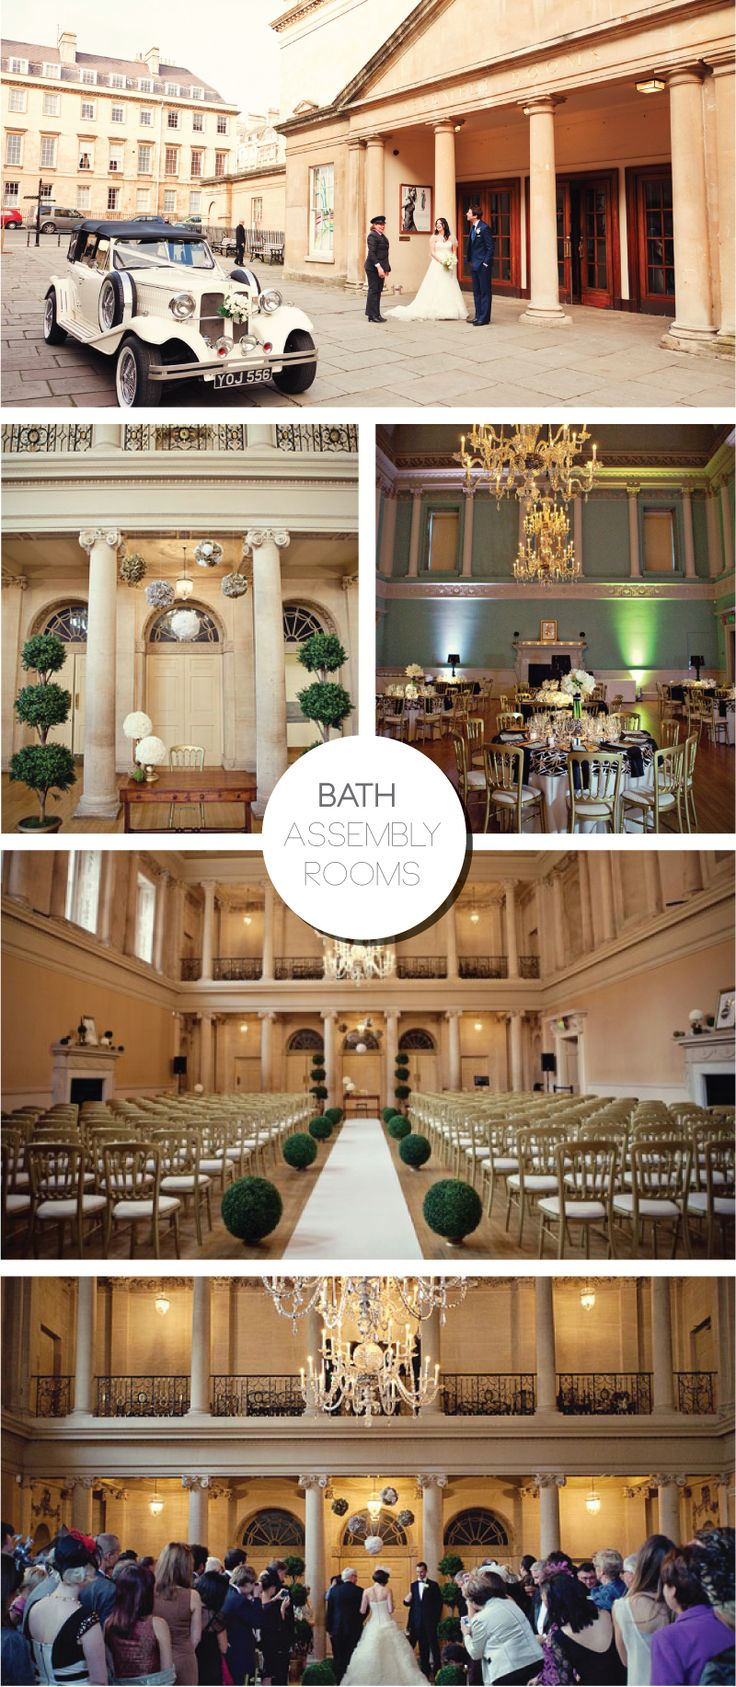 Assembly Rooms Wedding Venue